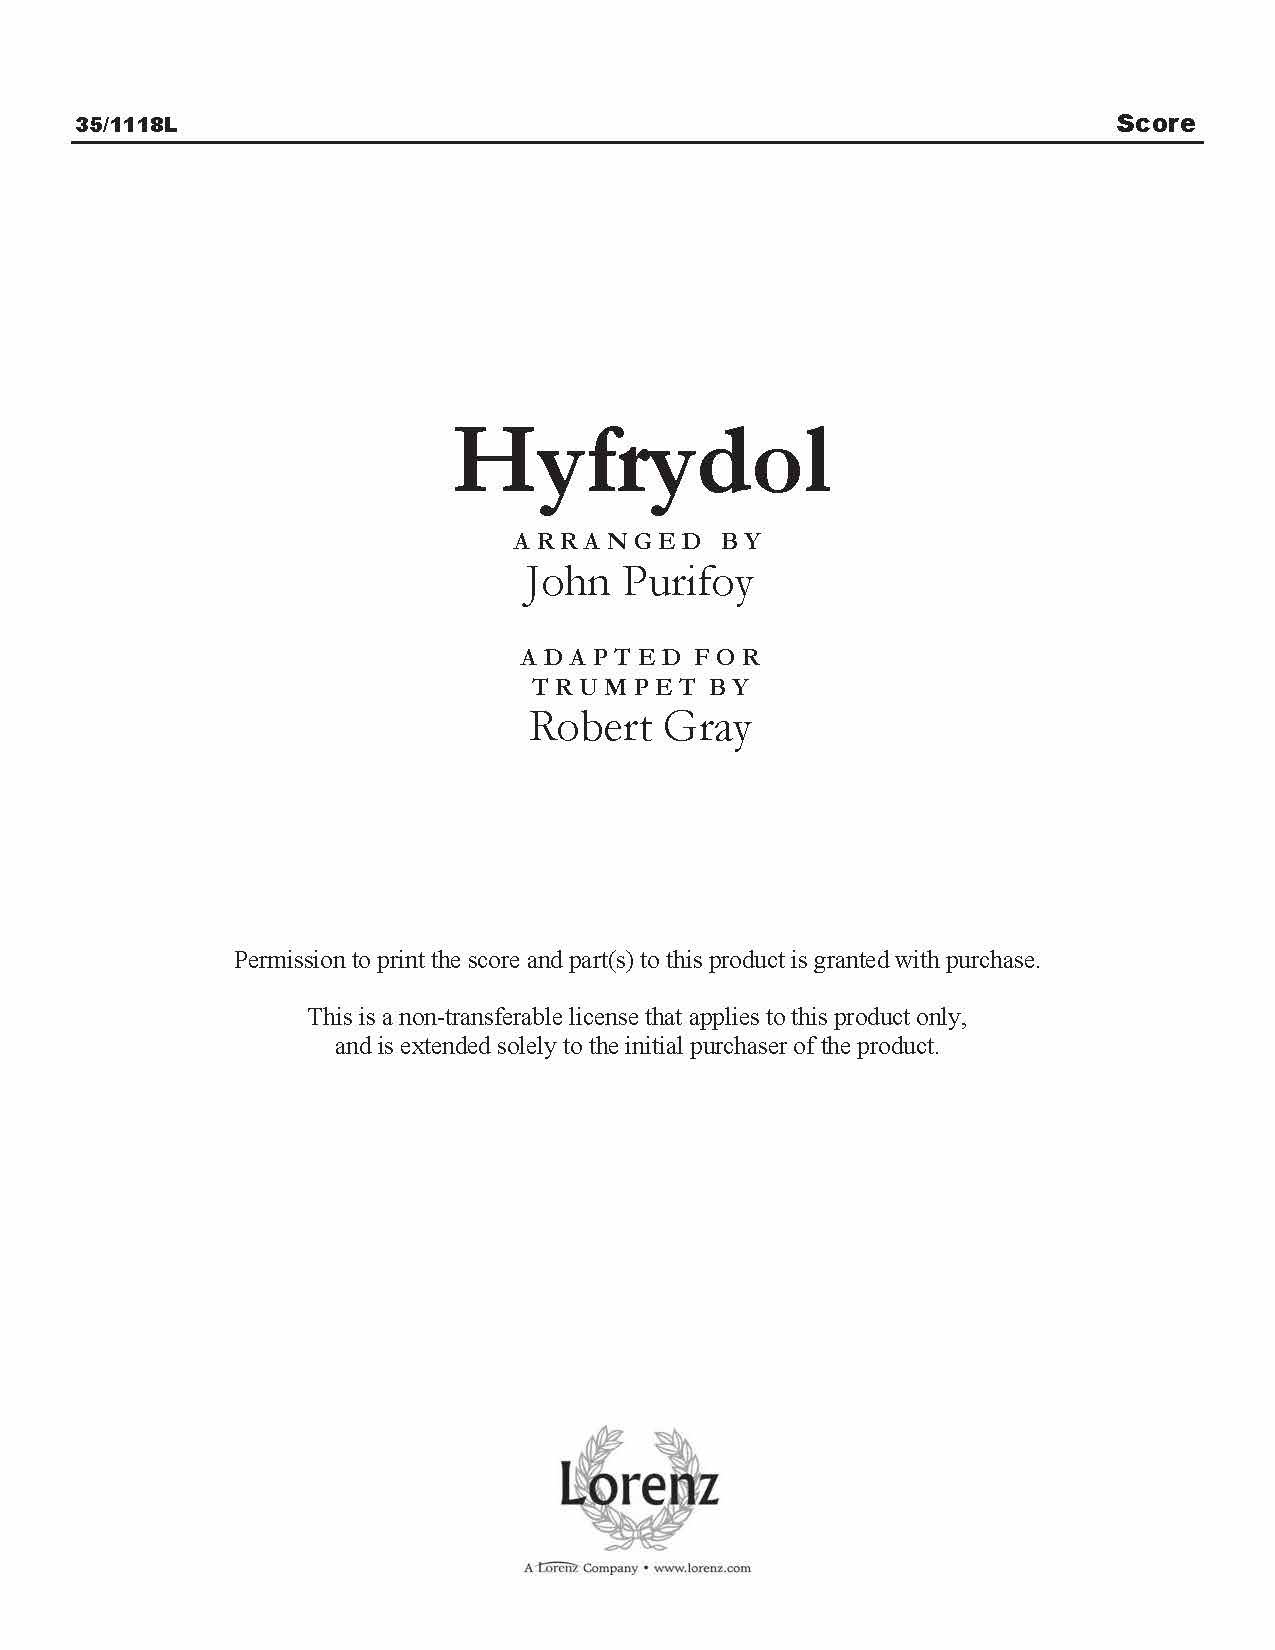 Hyfrydol (Digital Delivery)